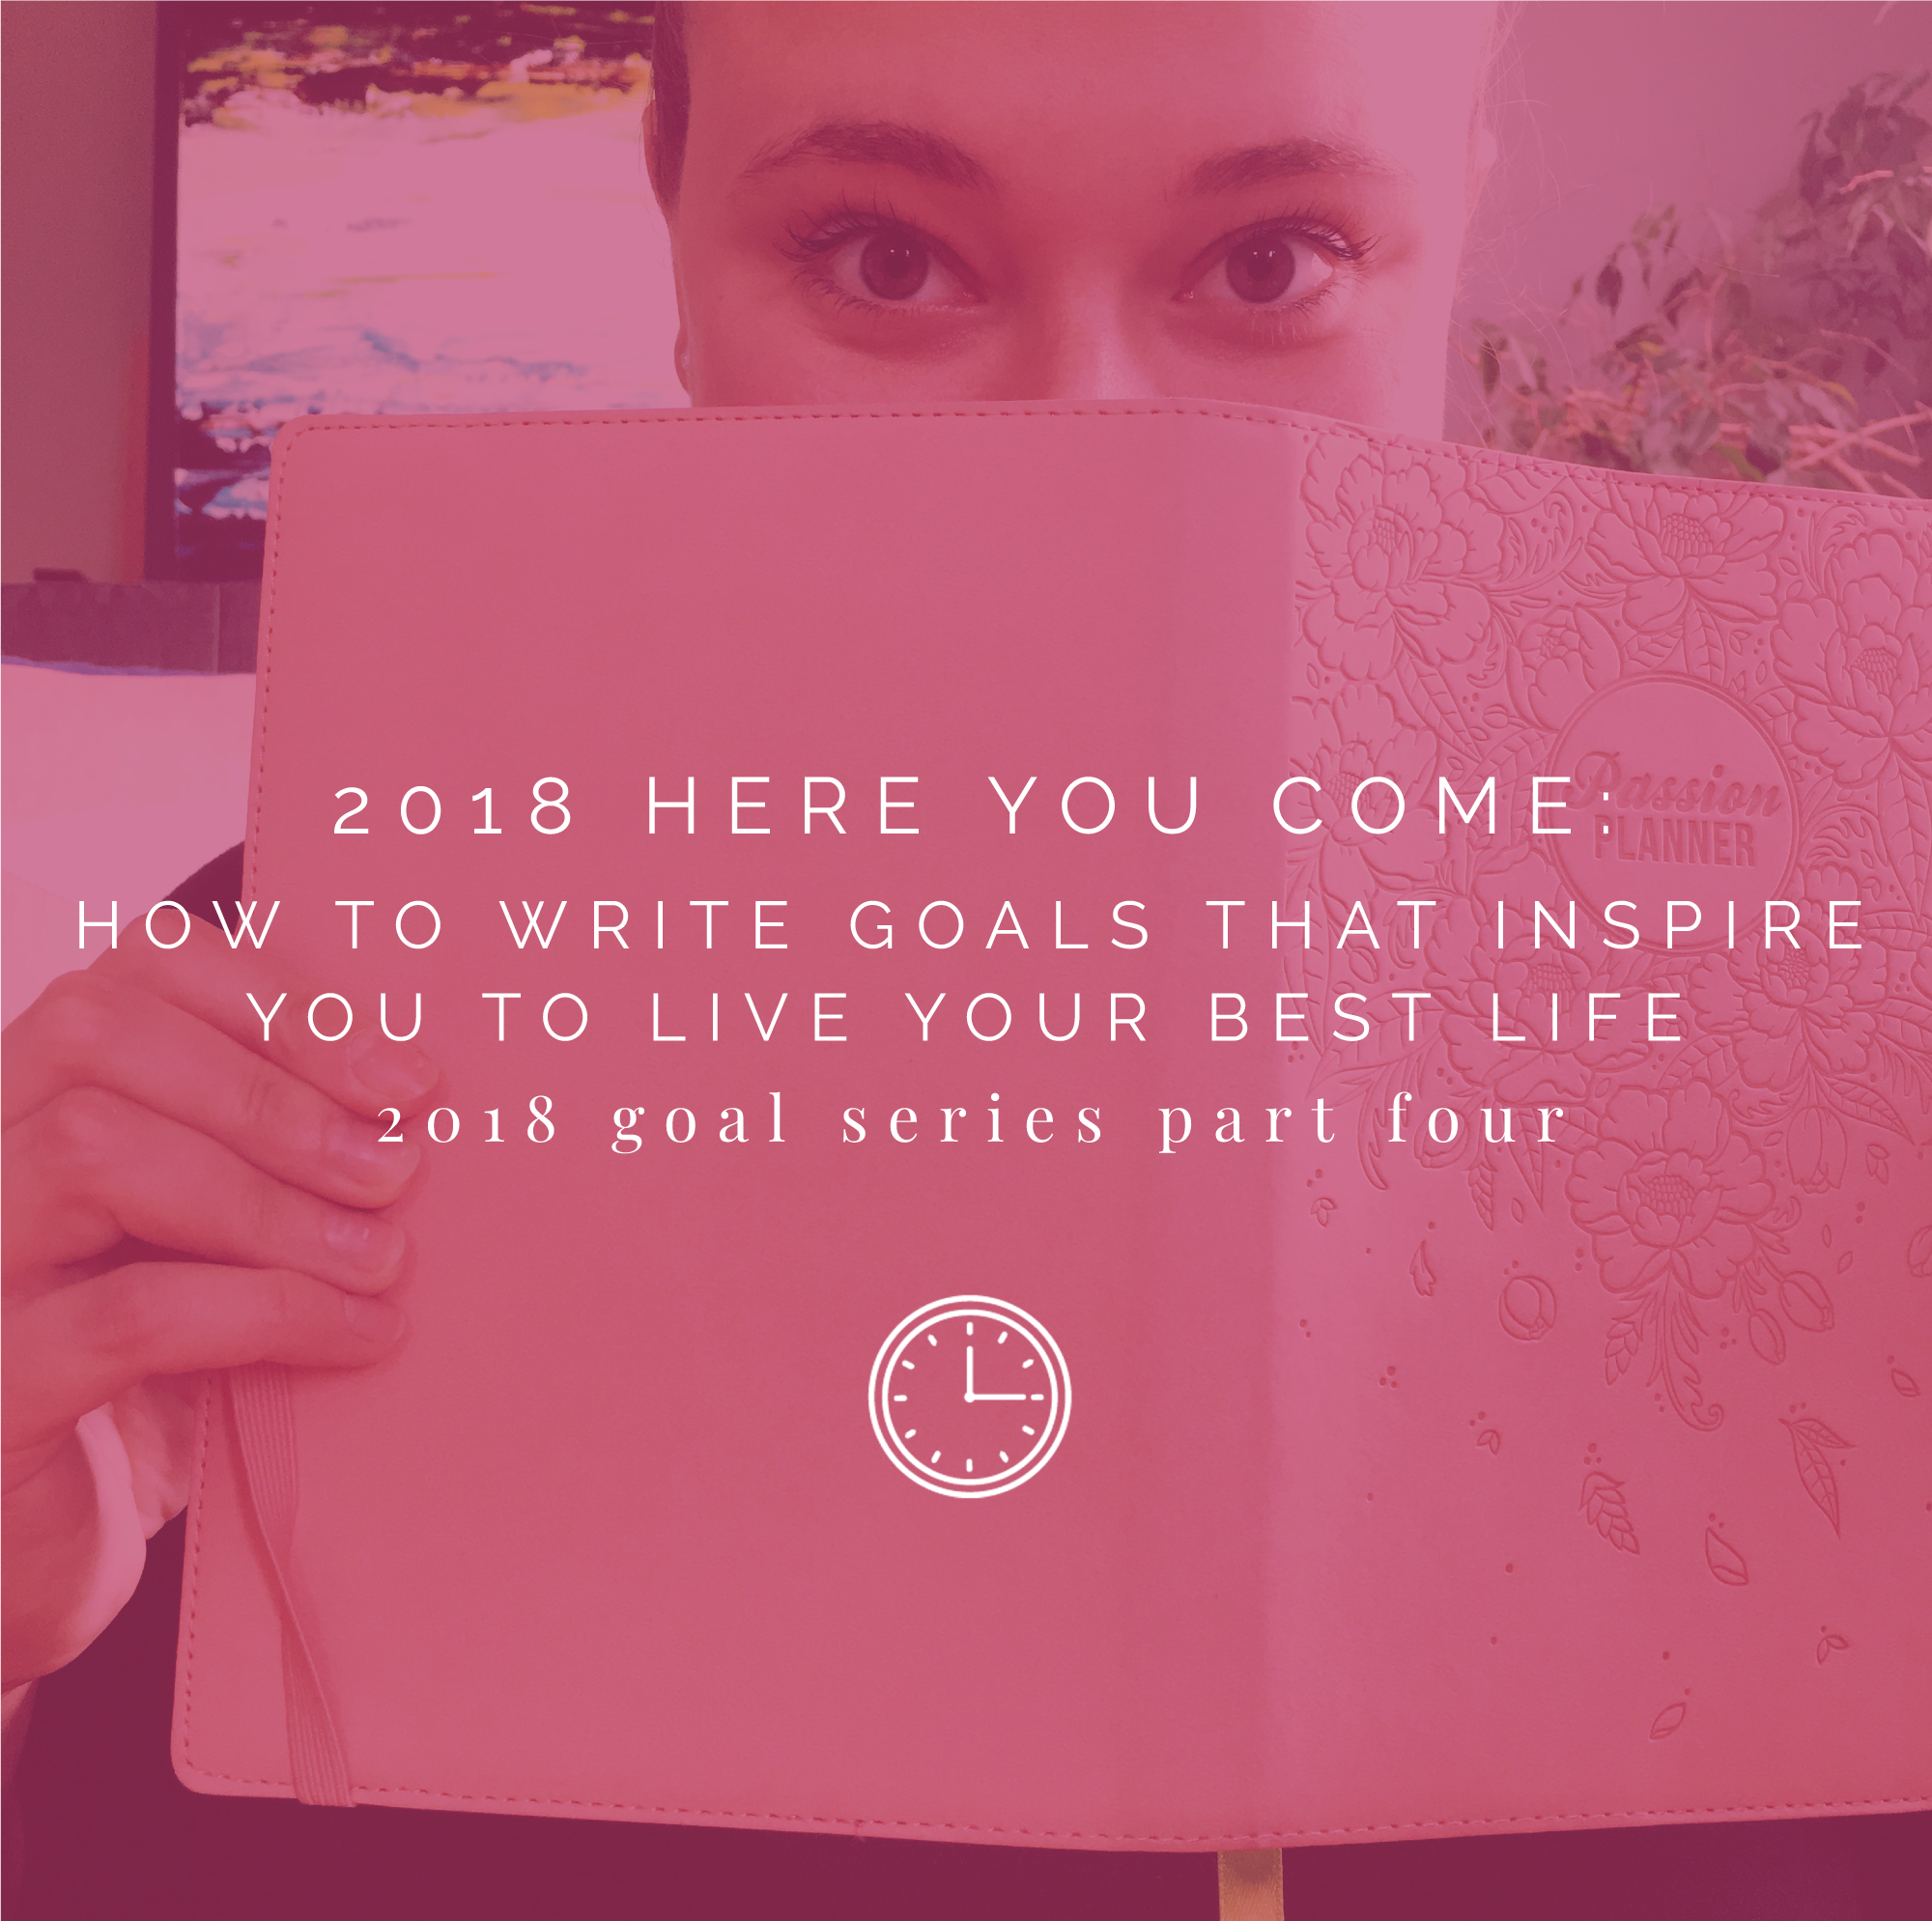 How to write goals